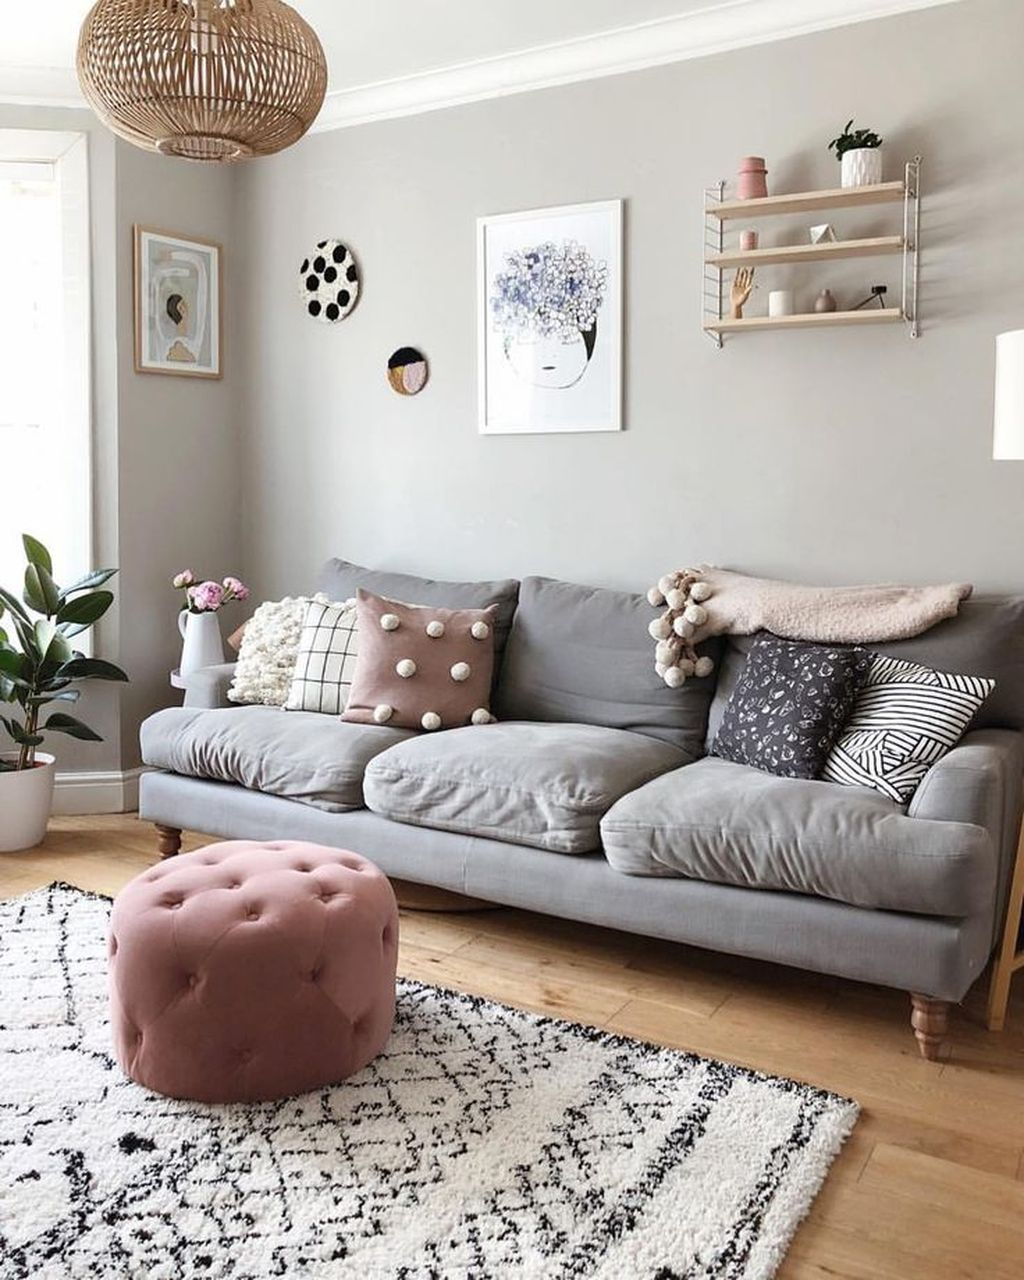 Luxury Living Room Design Ideas With Gray Wall Color 32